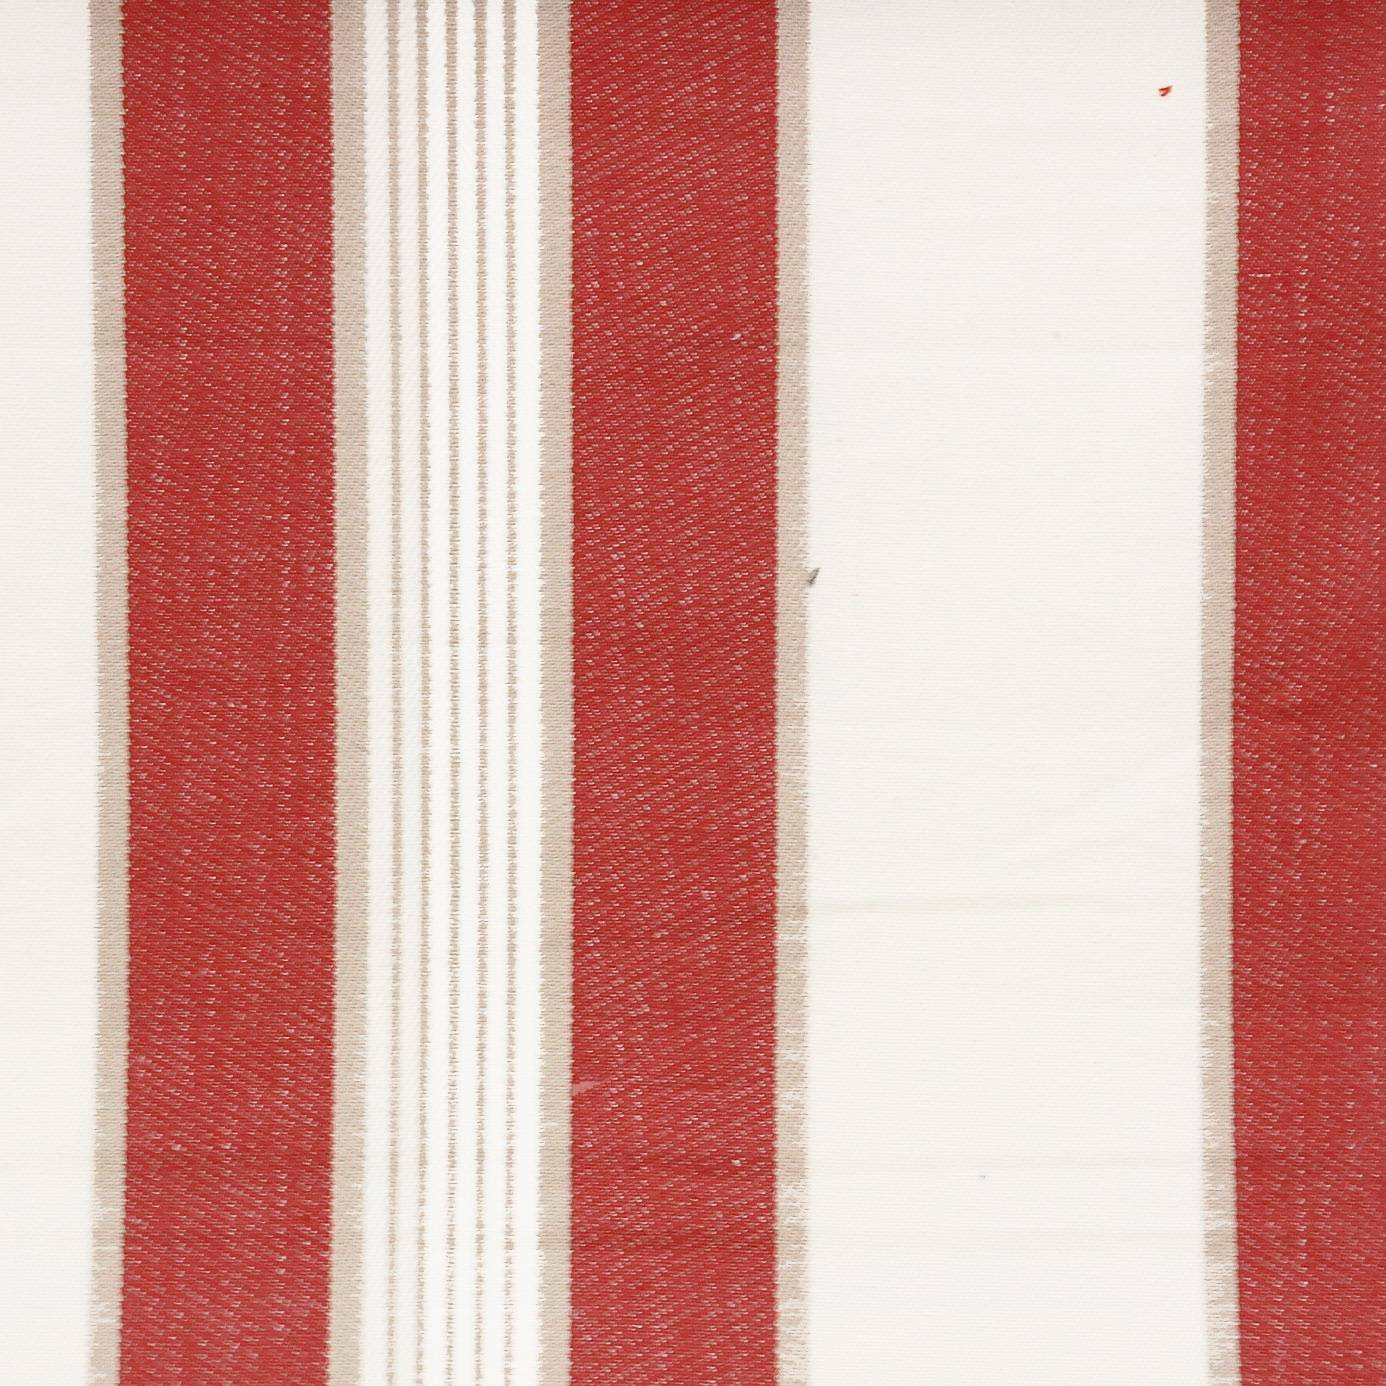 Regatta fabric red f0423 04 clarke clarke ticking for Ticking fabric